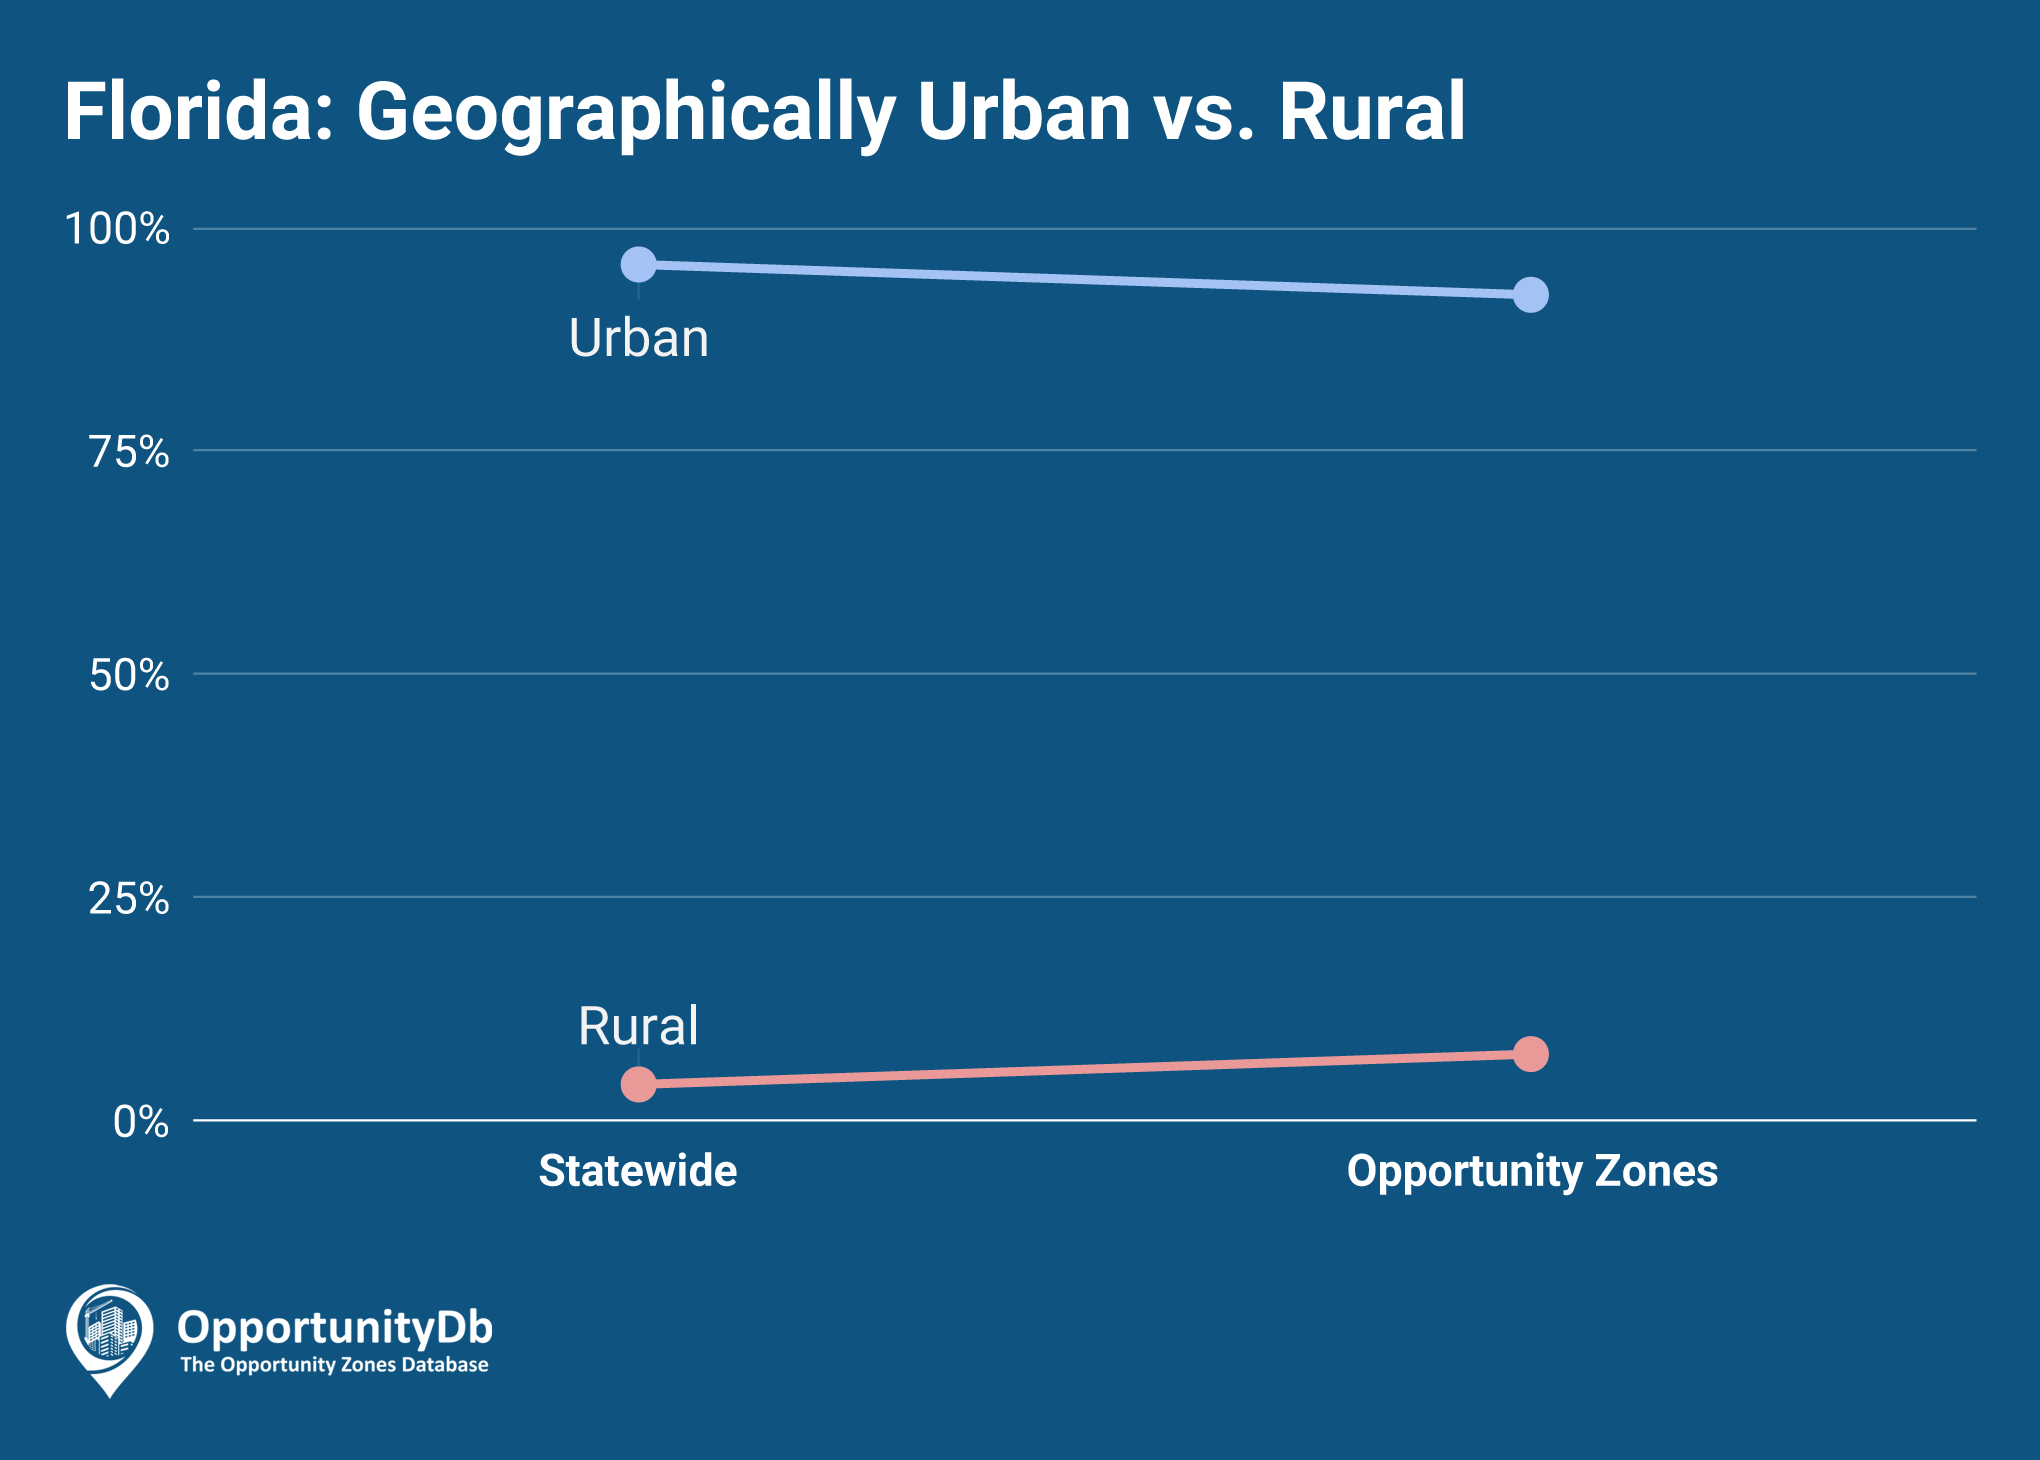 Urban vs. Rural in Florida Opportunity Zones